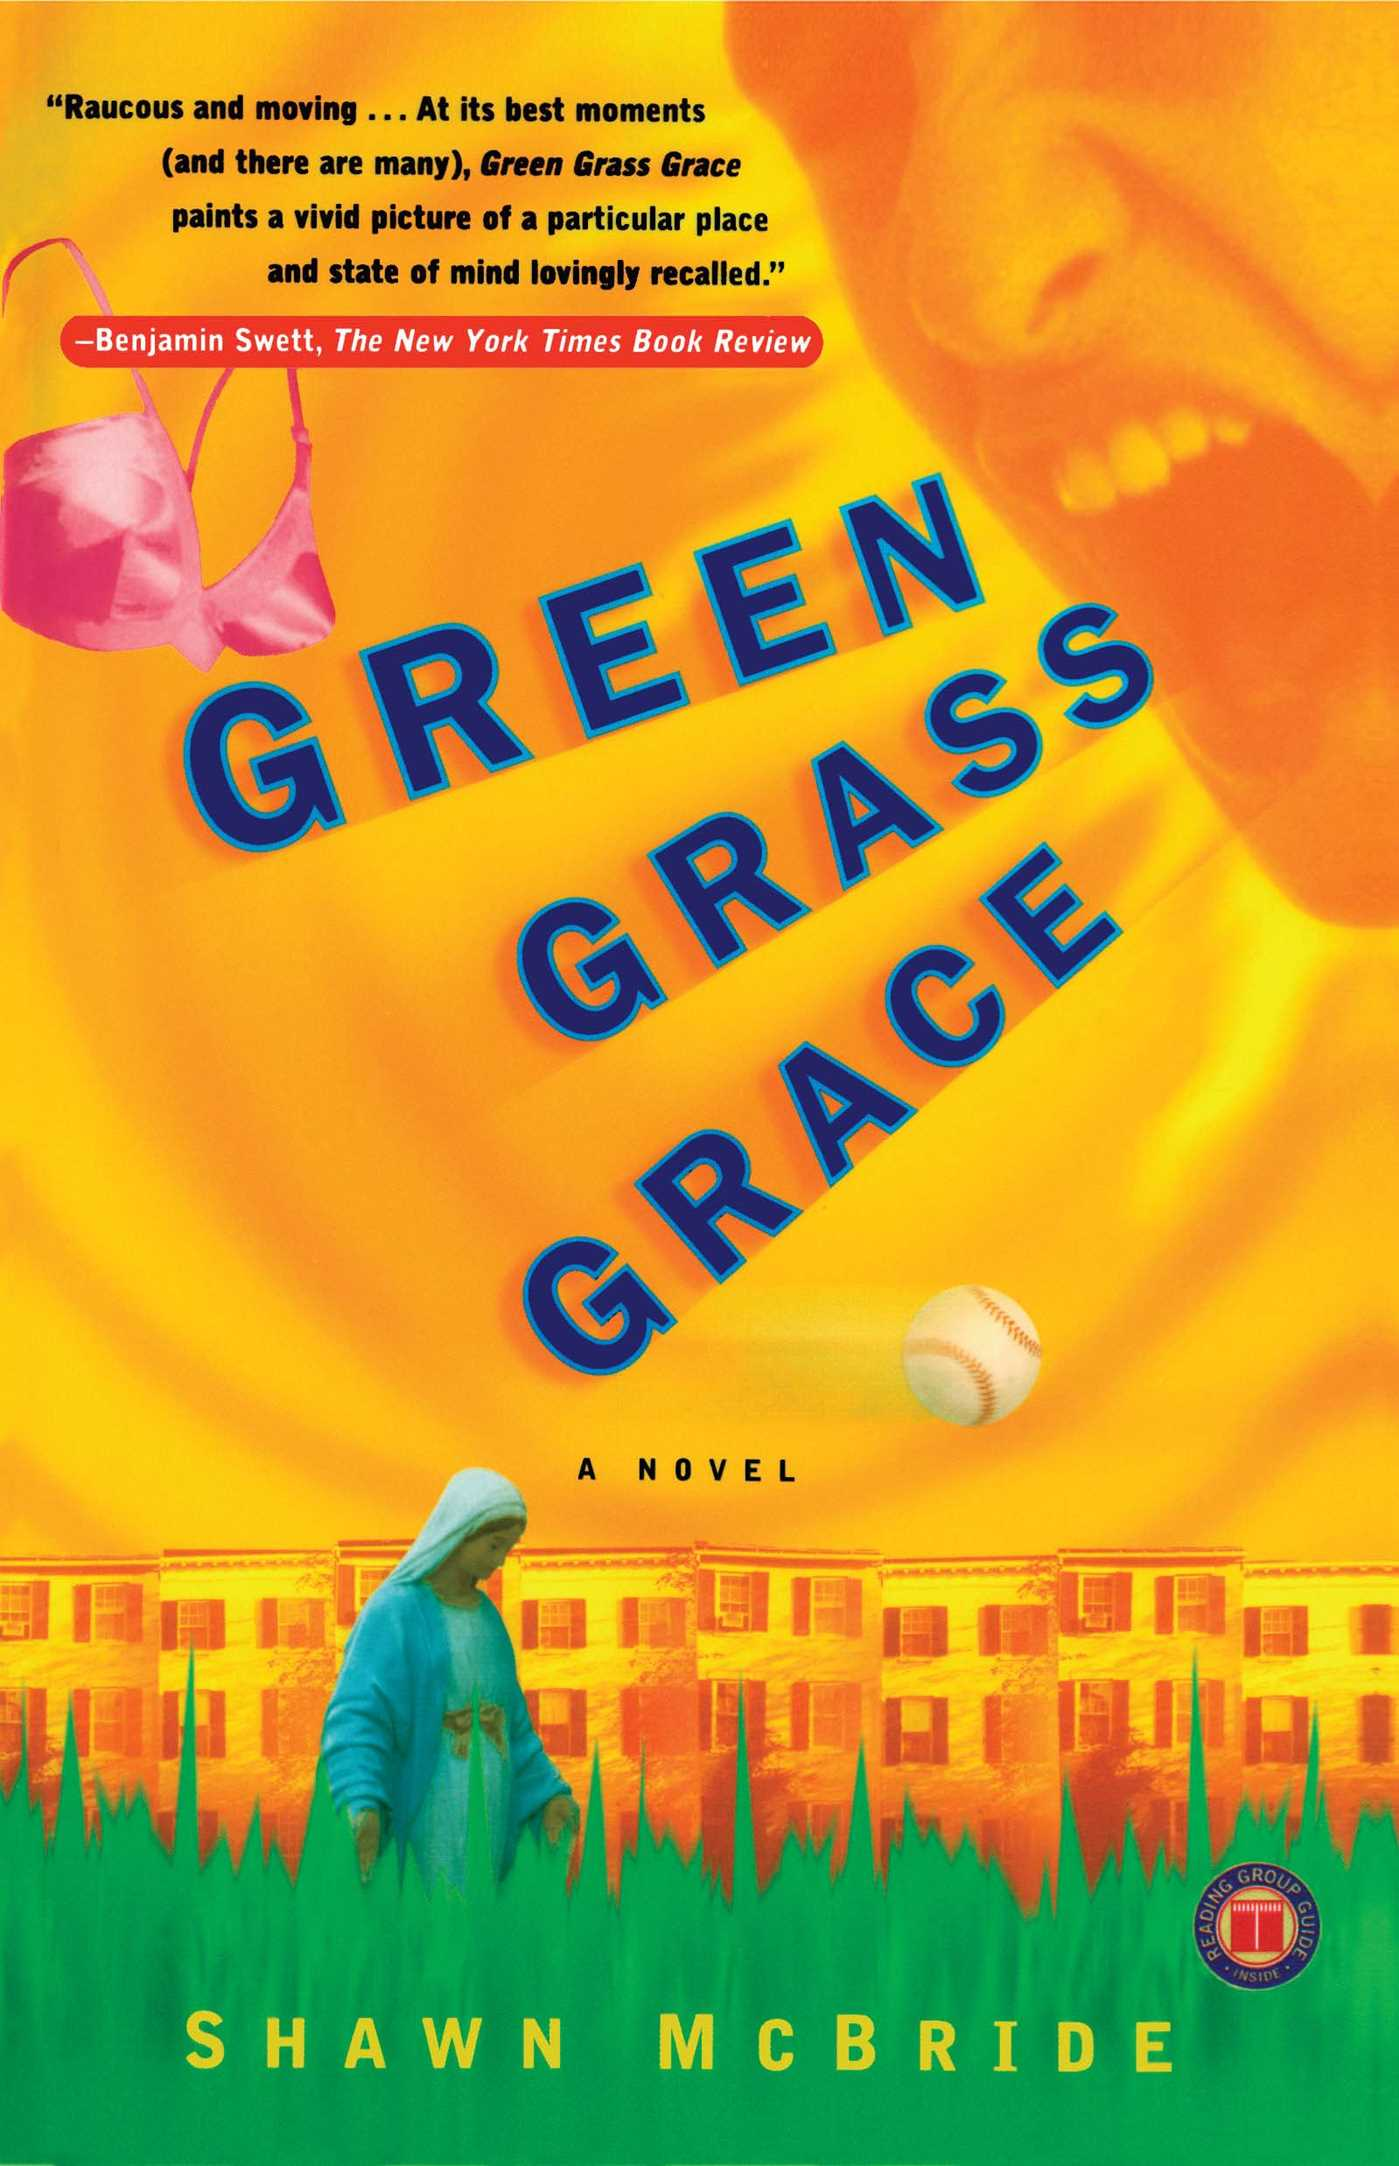 Green grass grace 9780743223119 hr